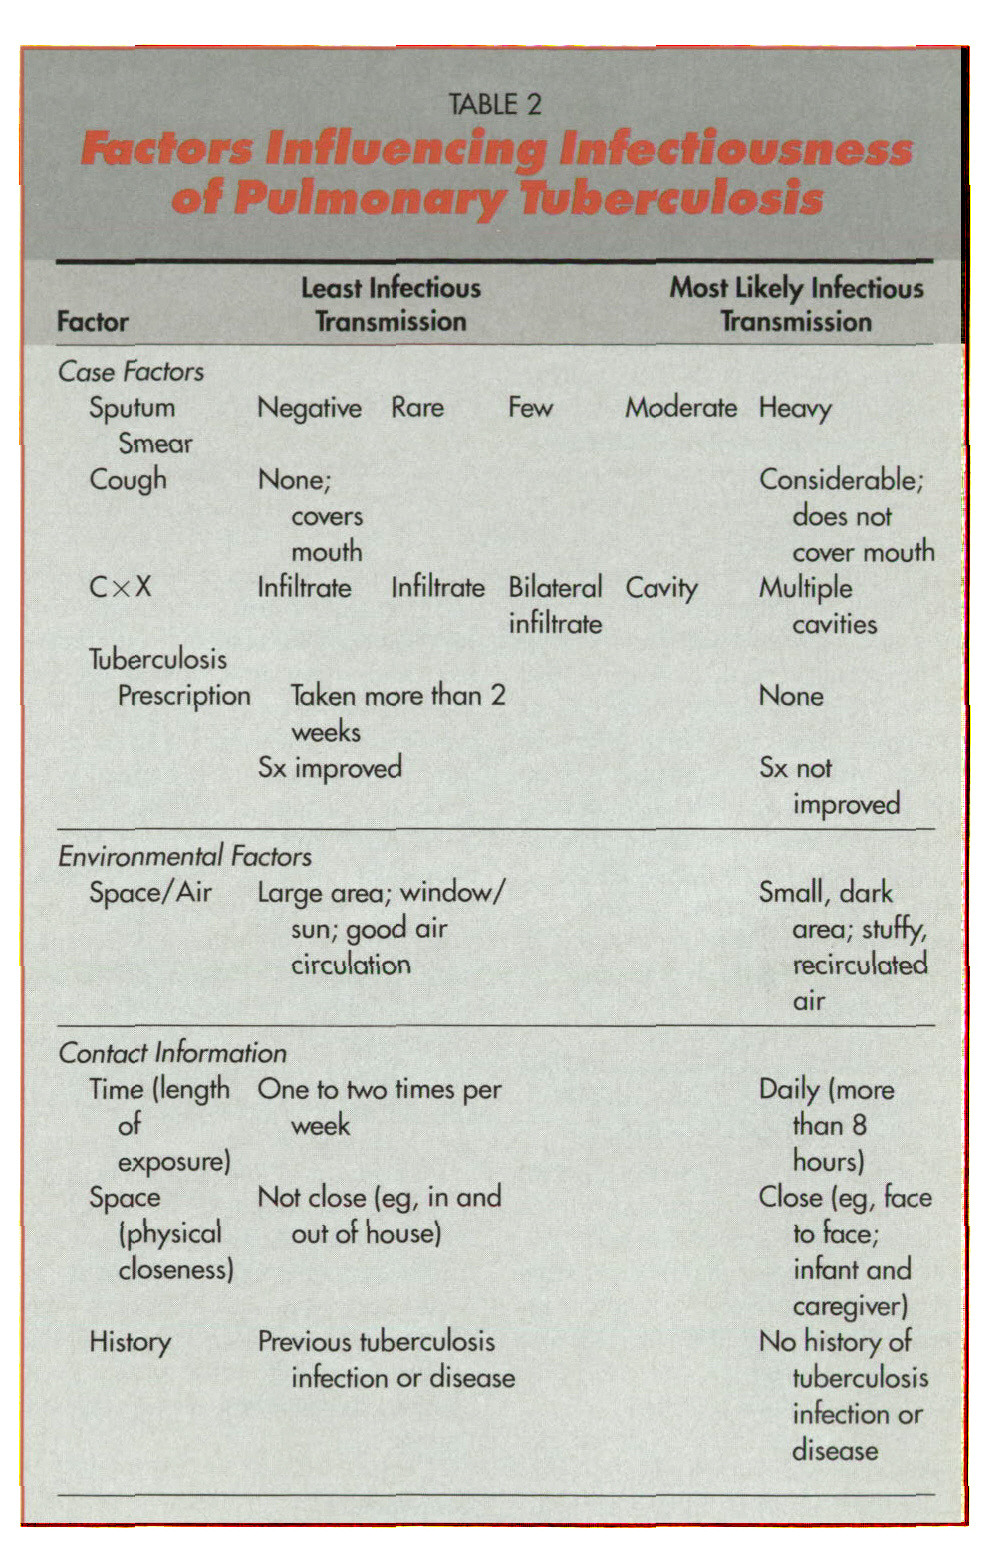 TABLE 2Factors Influencing Infectiousness of Pulmonary Tuberculosis